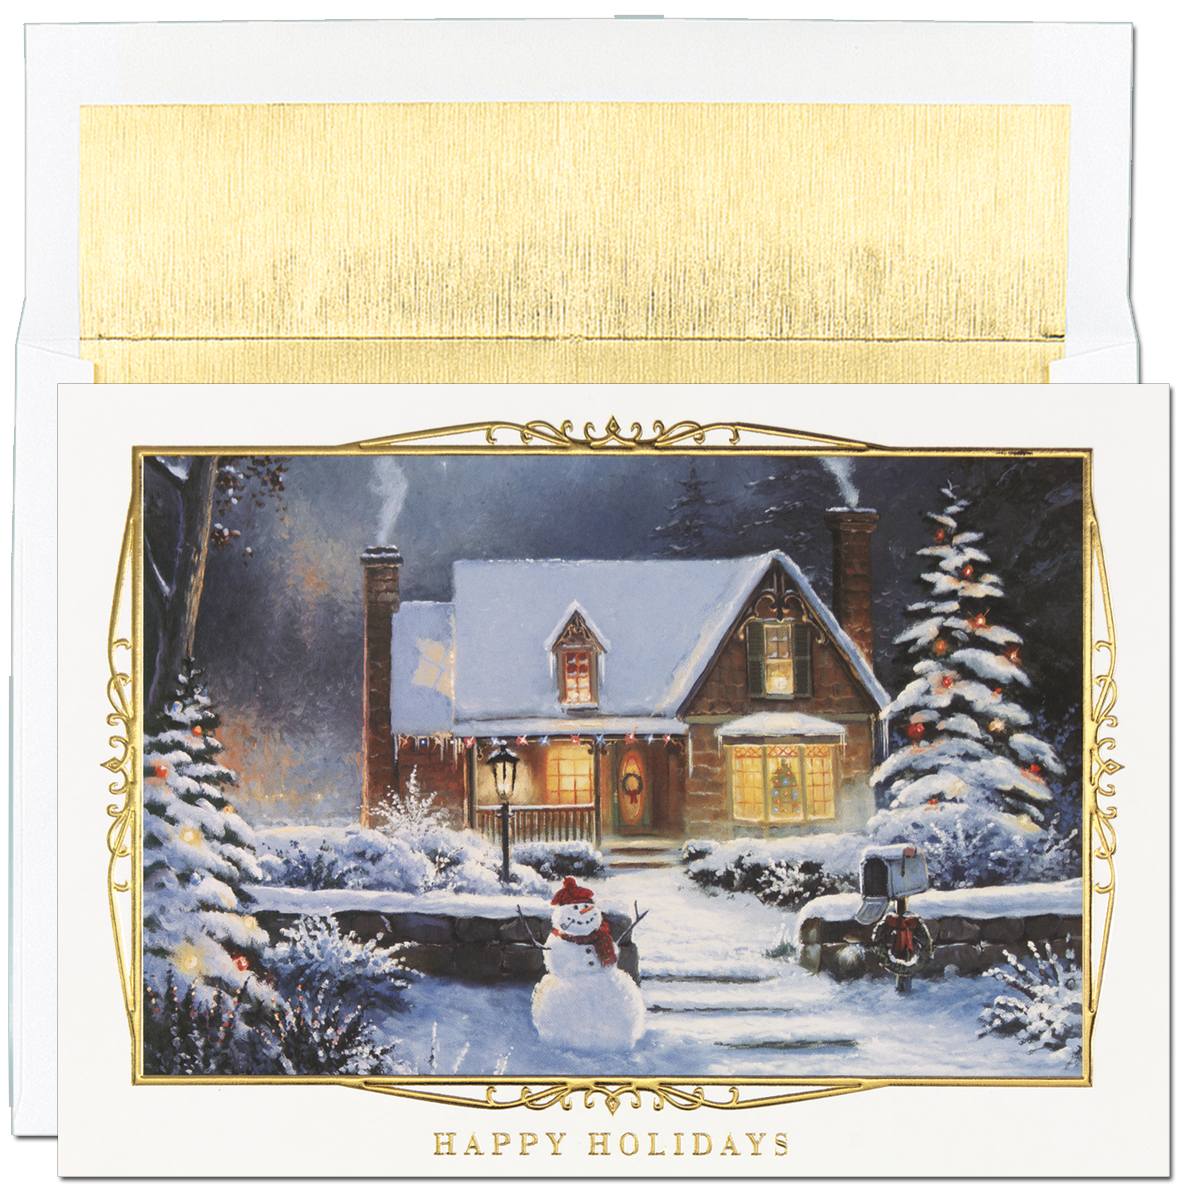 Snowman Scene Greeting Card - Beautiful gold foiled embossed holiday card.  Blank inside is perfect for corporate holiday cards or for the individual that would like to add their own personal greeting. Impress In Print will personalize your greeting and add images or company logos to cards. (Please note image fee is $25.00) Comes with white with gold-lined envelopes.